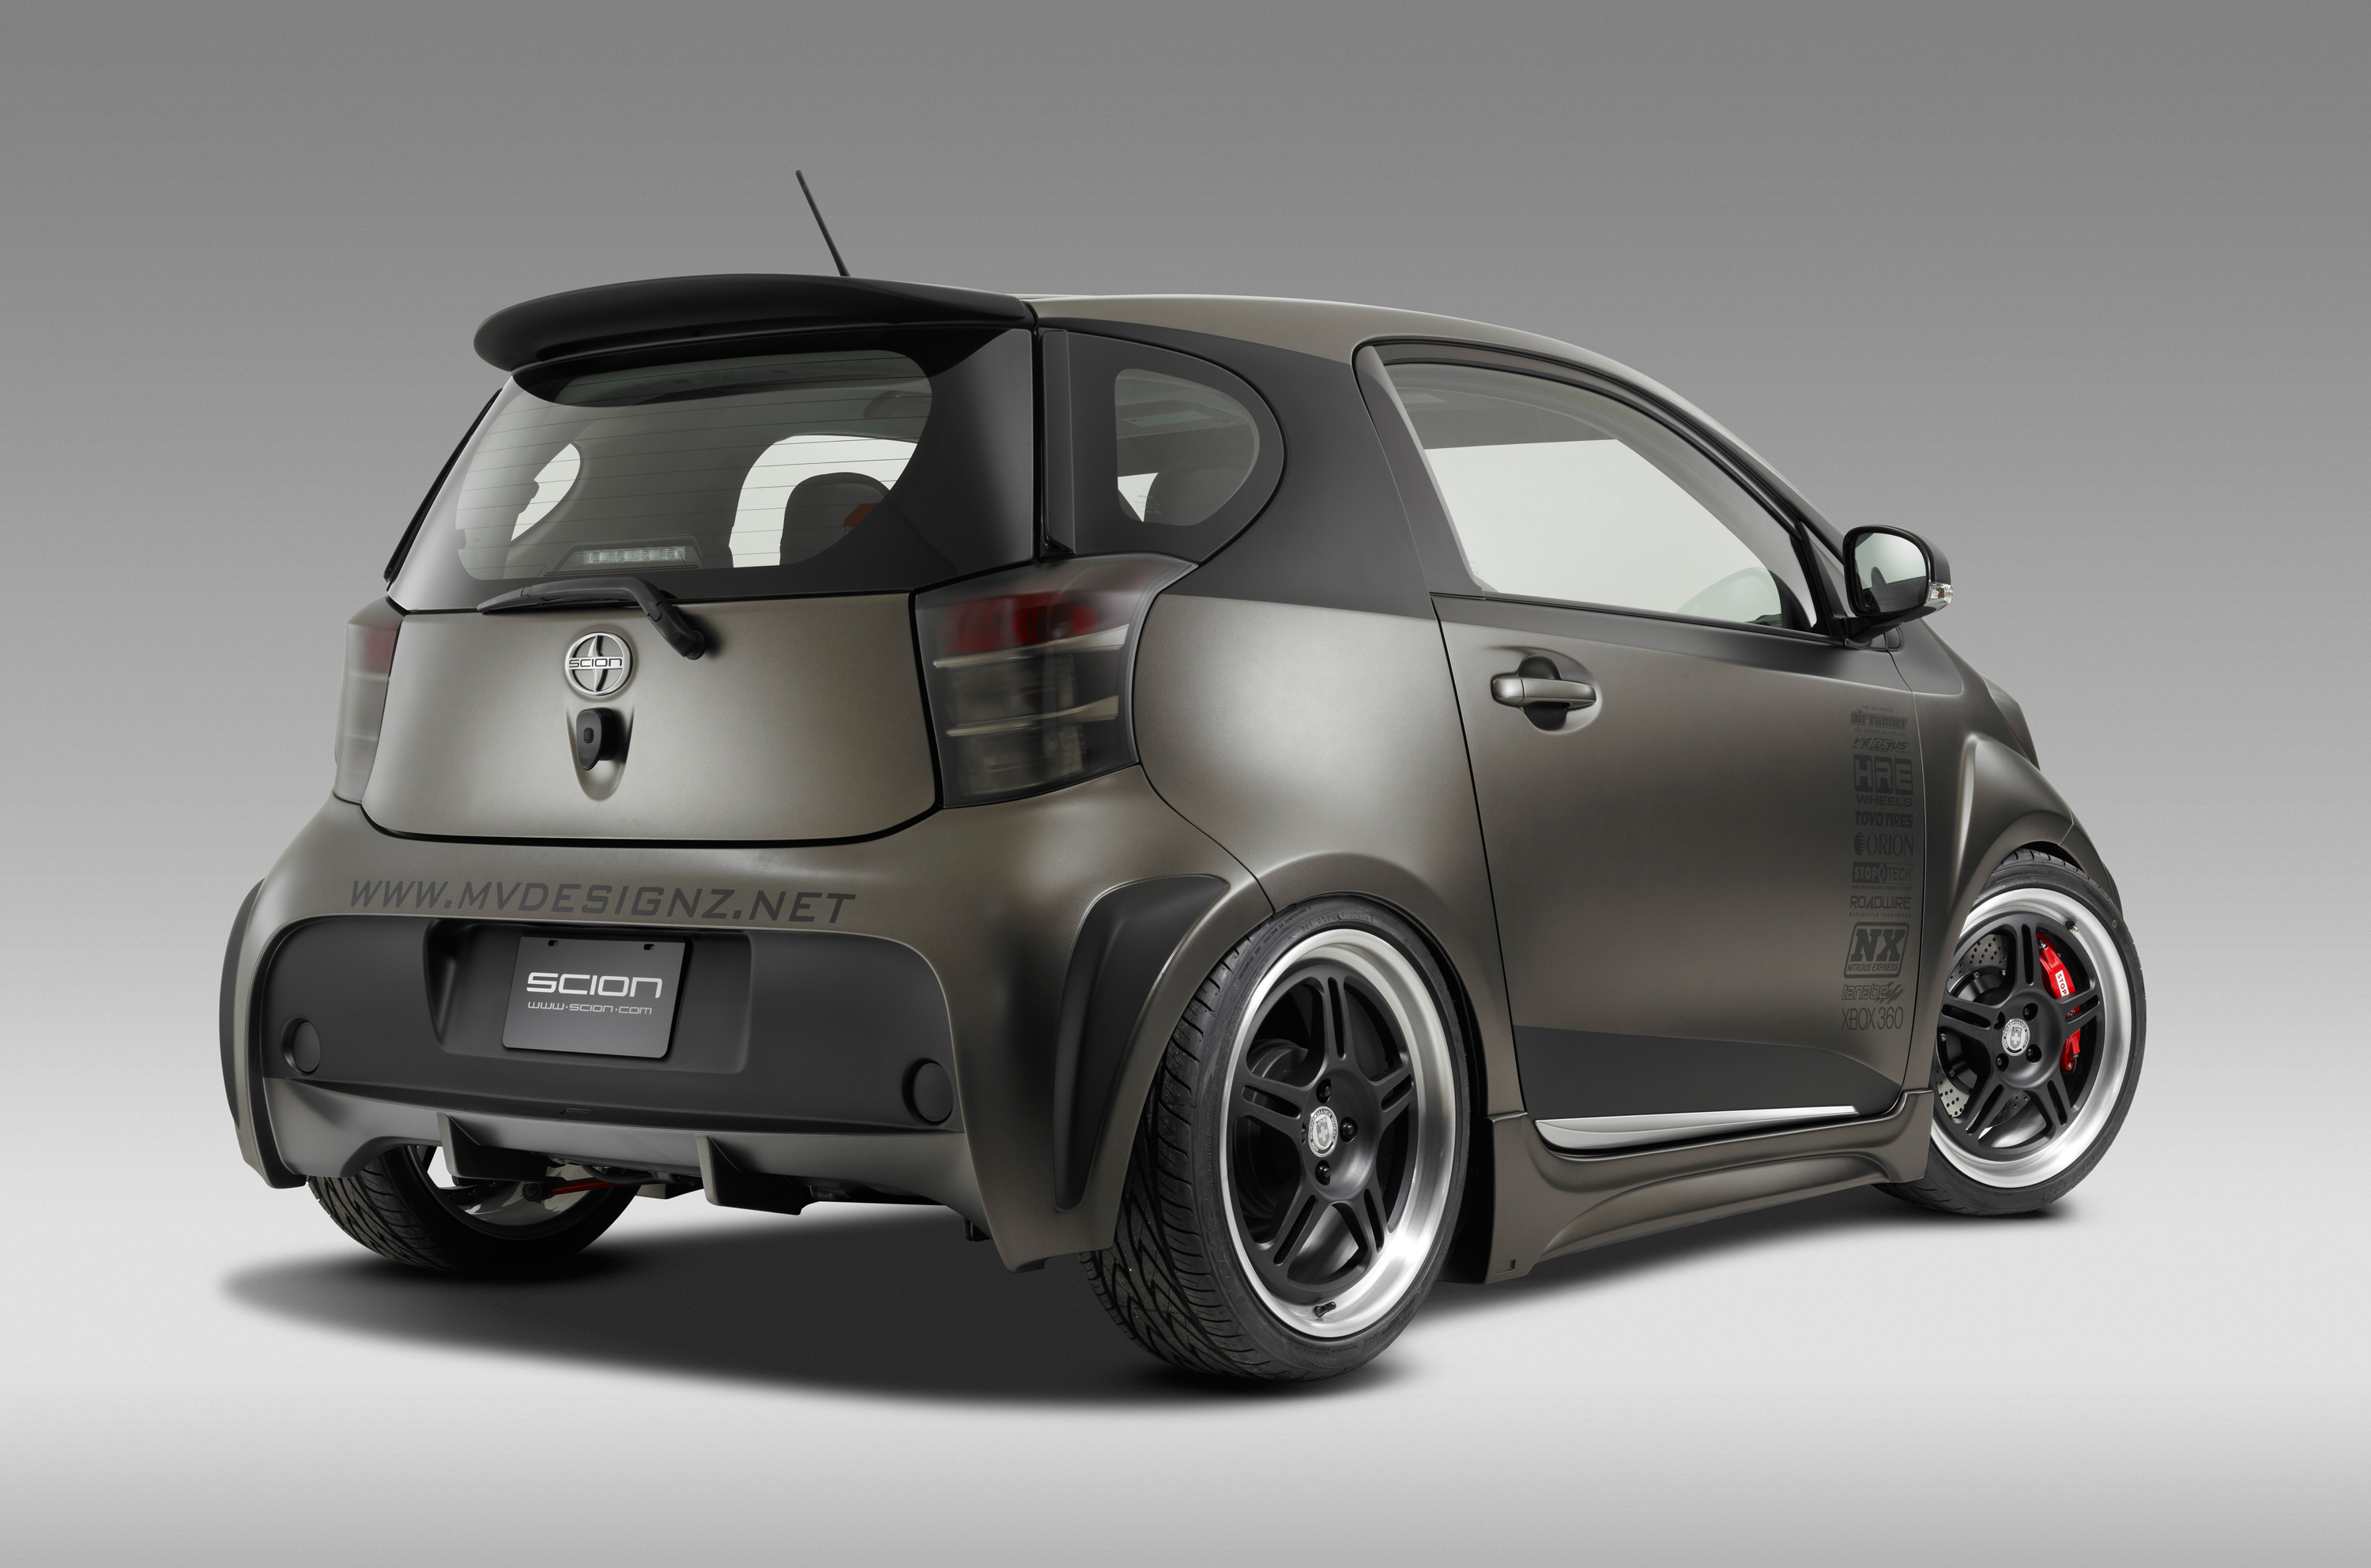 2012 Scion IQ AirRunner system Now on Sale! | Air Runner ...